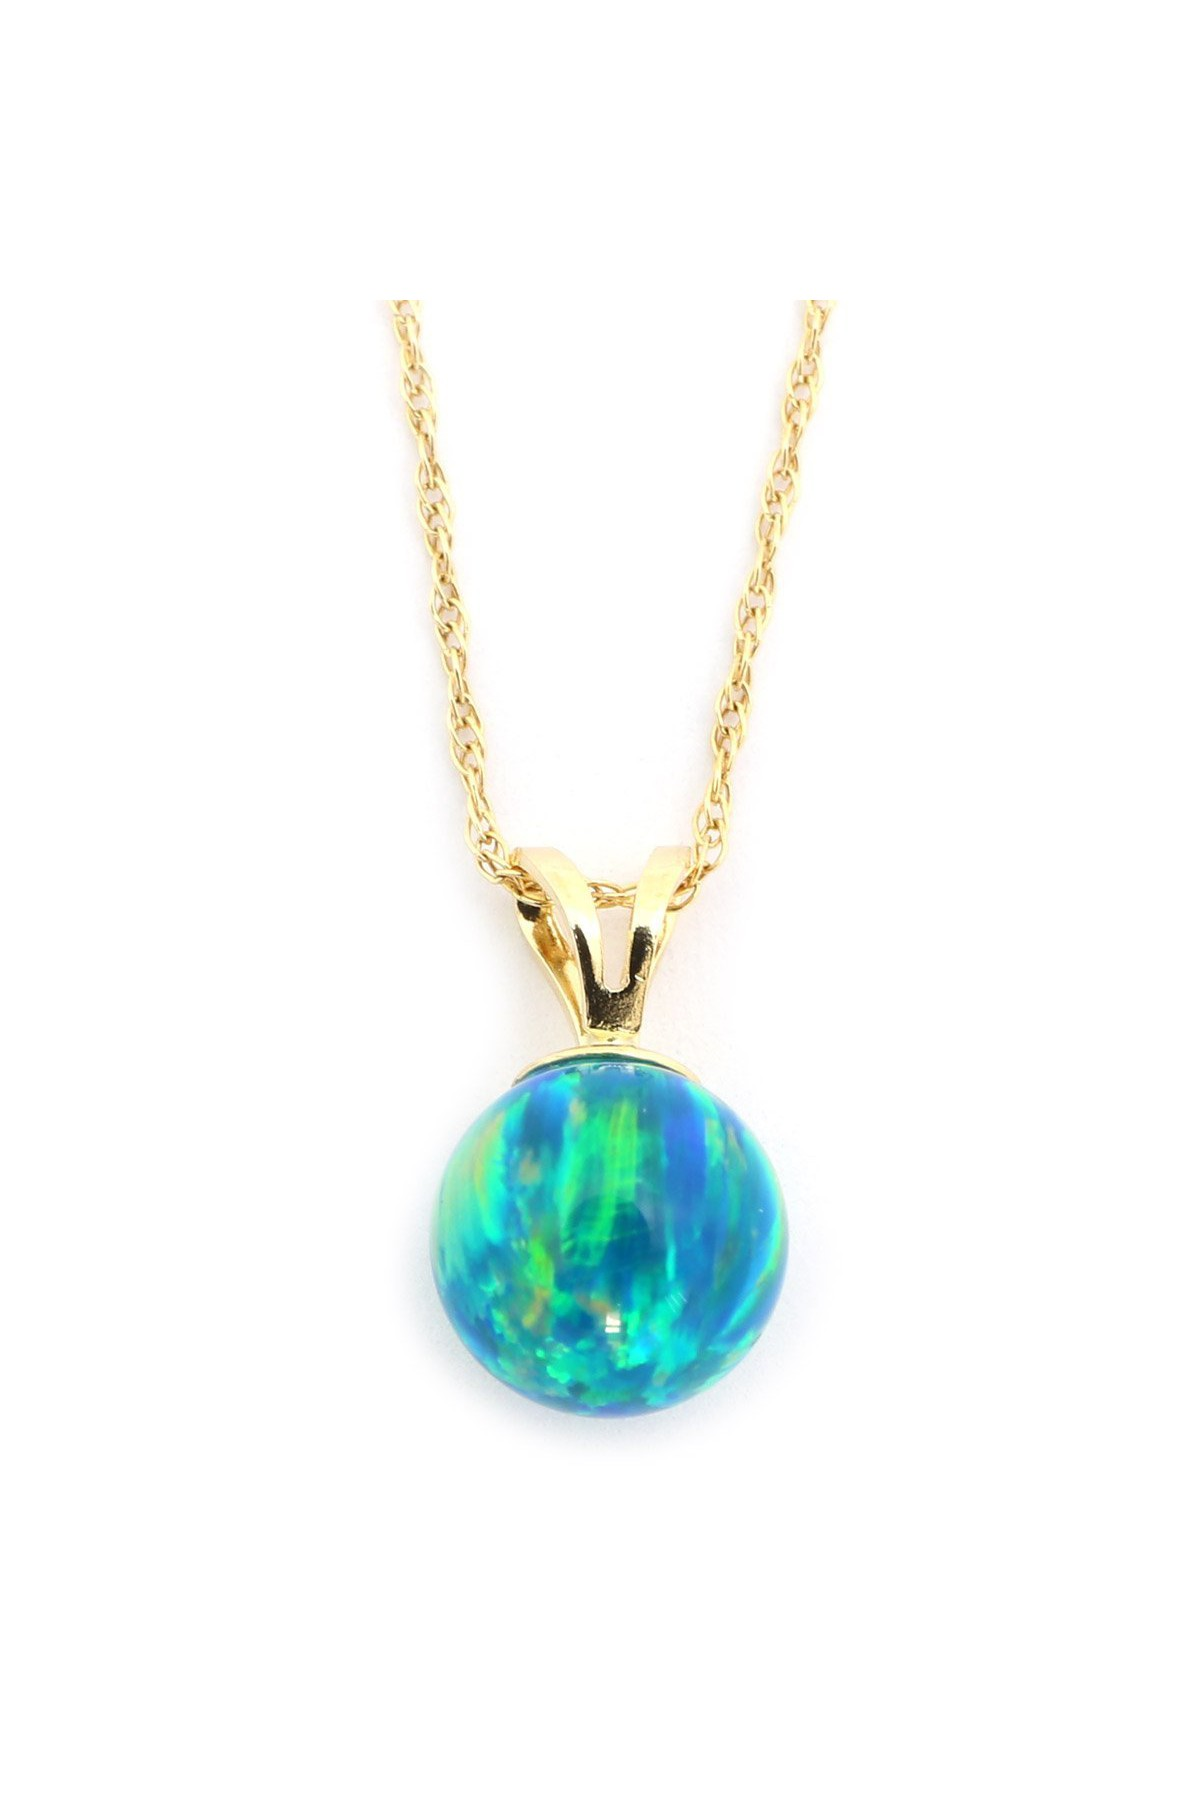 "14k Yellow or White Gold 5mm Green Simulated Opal Pendant Necklace, 13"" 15"" 16"" 18"" 20""... by"